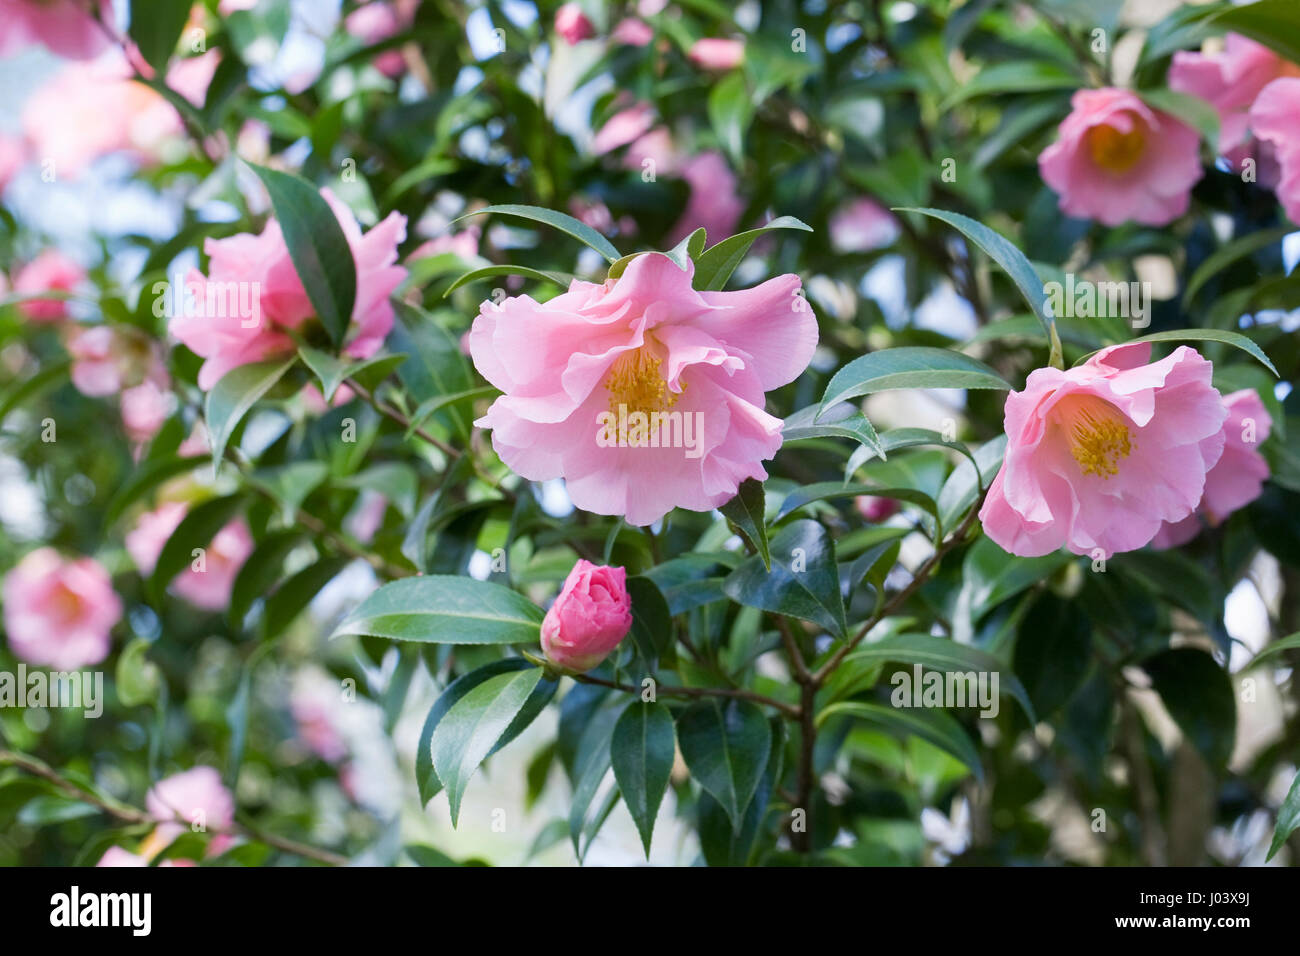 Camellia x williamsii Tiptoe flowers in Spring. - Stock Image